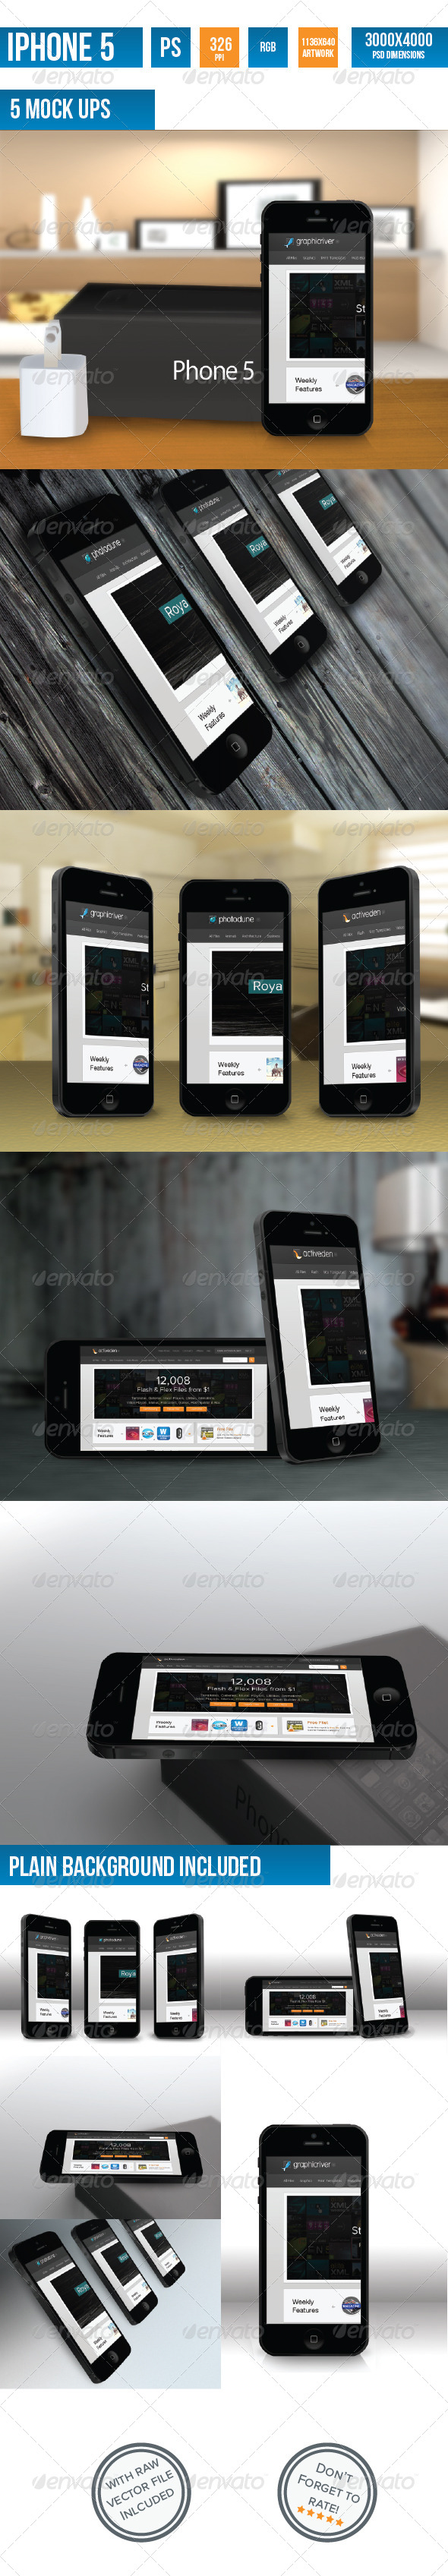 iPhone 5 Photorealistic Mock-UP - Mobile Displays